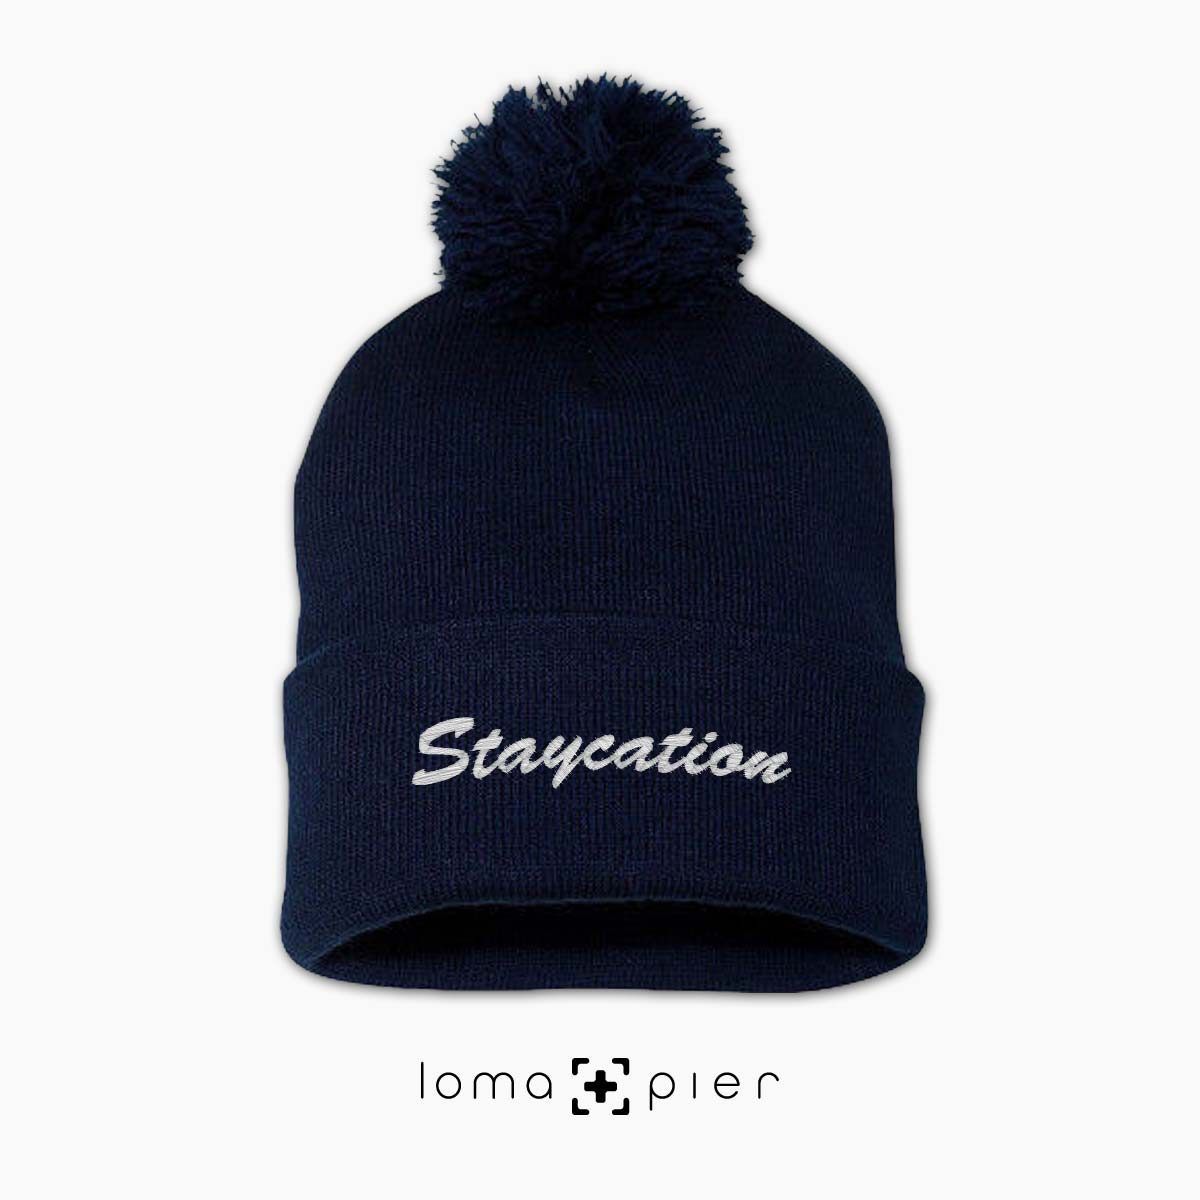 STAYCATION chill saying embroidered on a navy blue pom pom beanie by loma+pier hat store